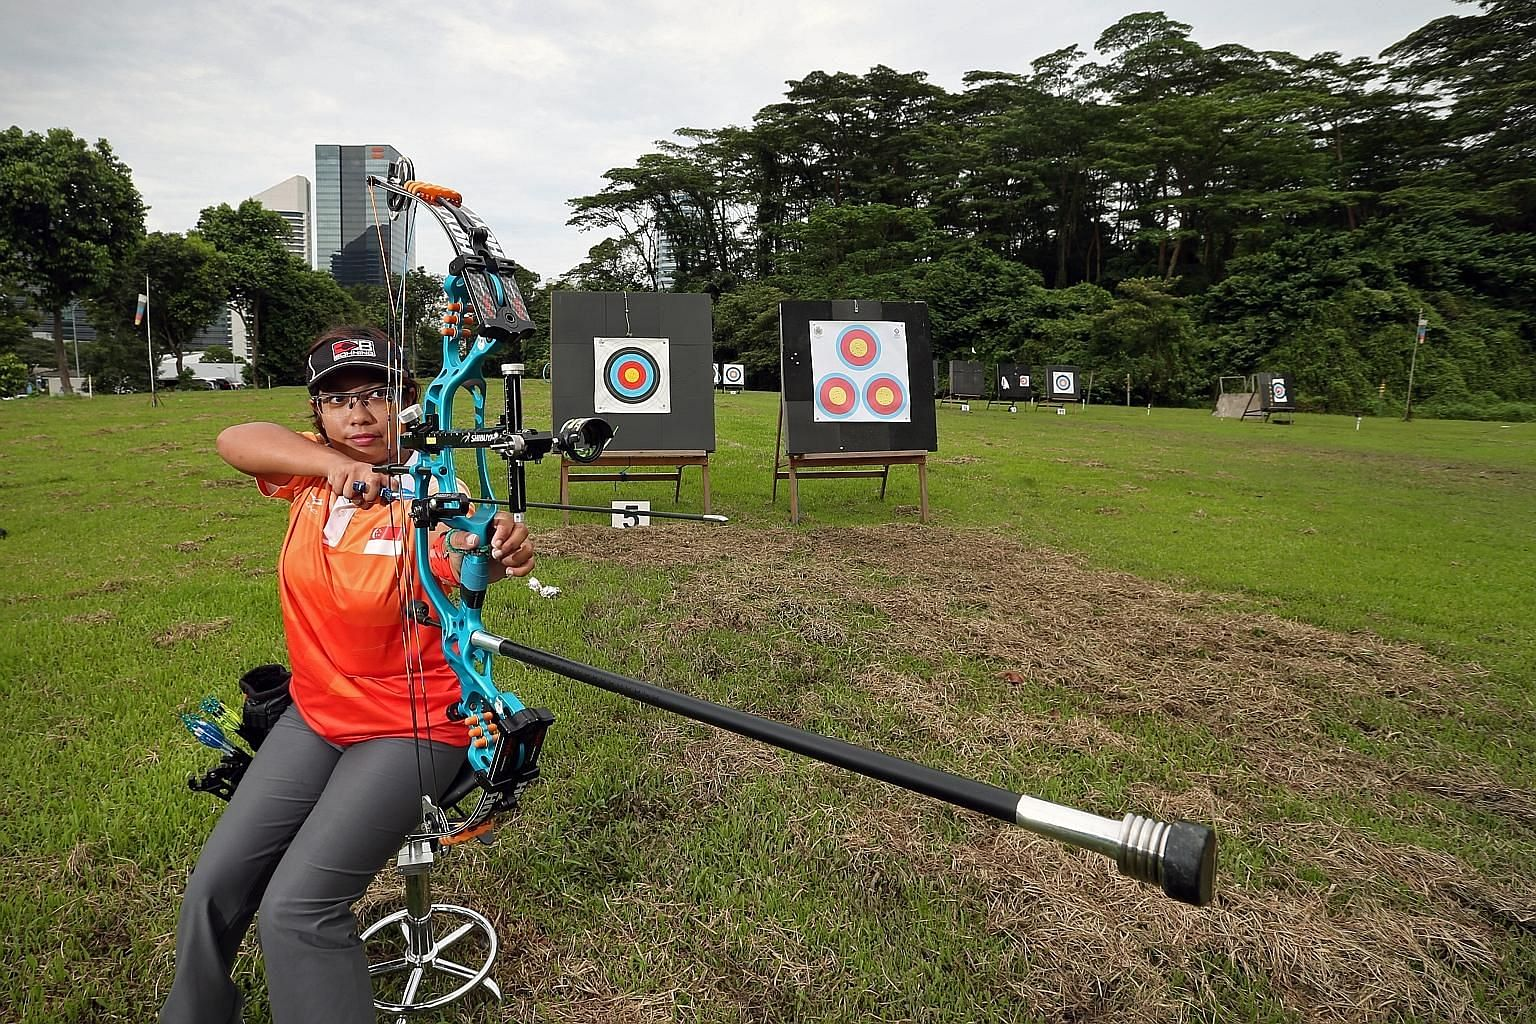 Para-archer Nur Syahidah Alim is one of Singapore's 63 athletes affected by the APG postponement. The world No. 1, who won gold in the compound event at the 2017 Games, insists she will still deliver her best.